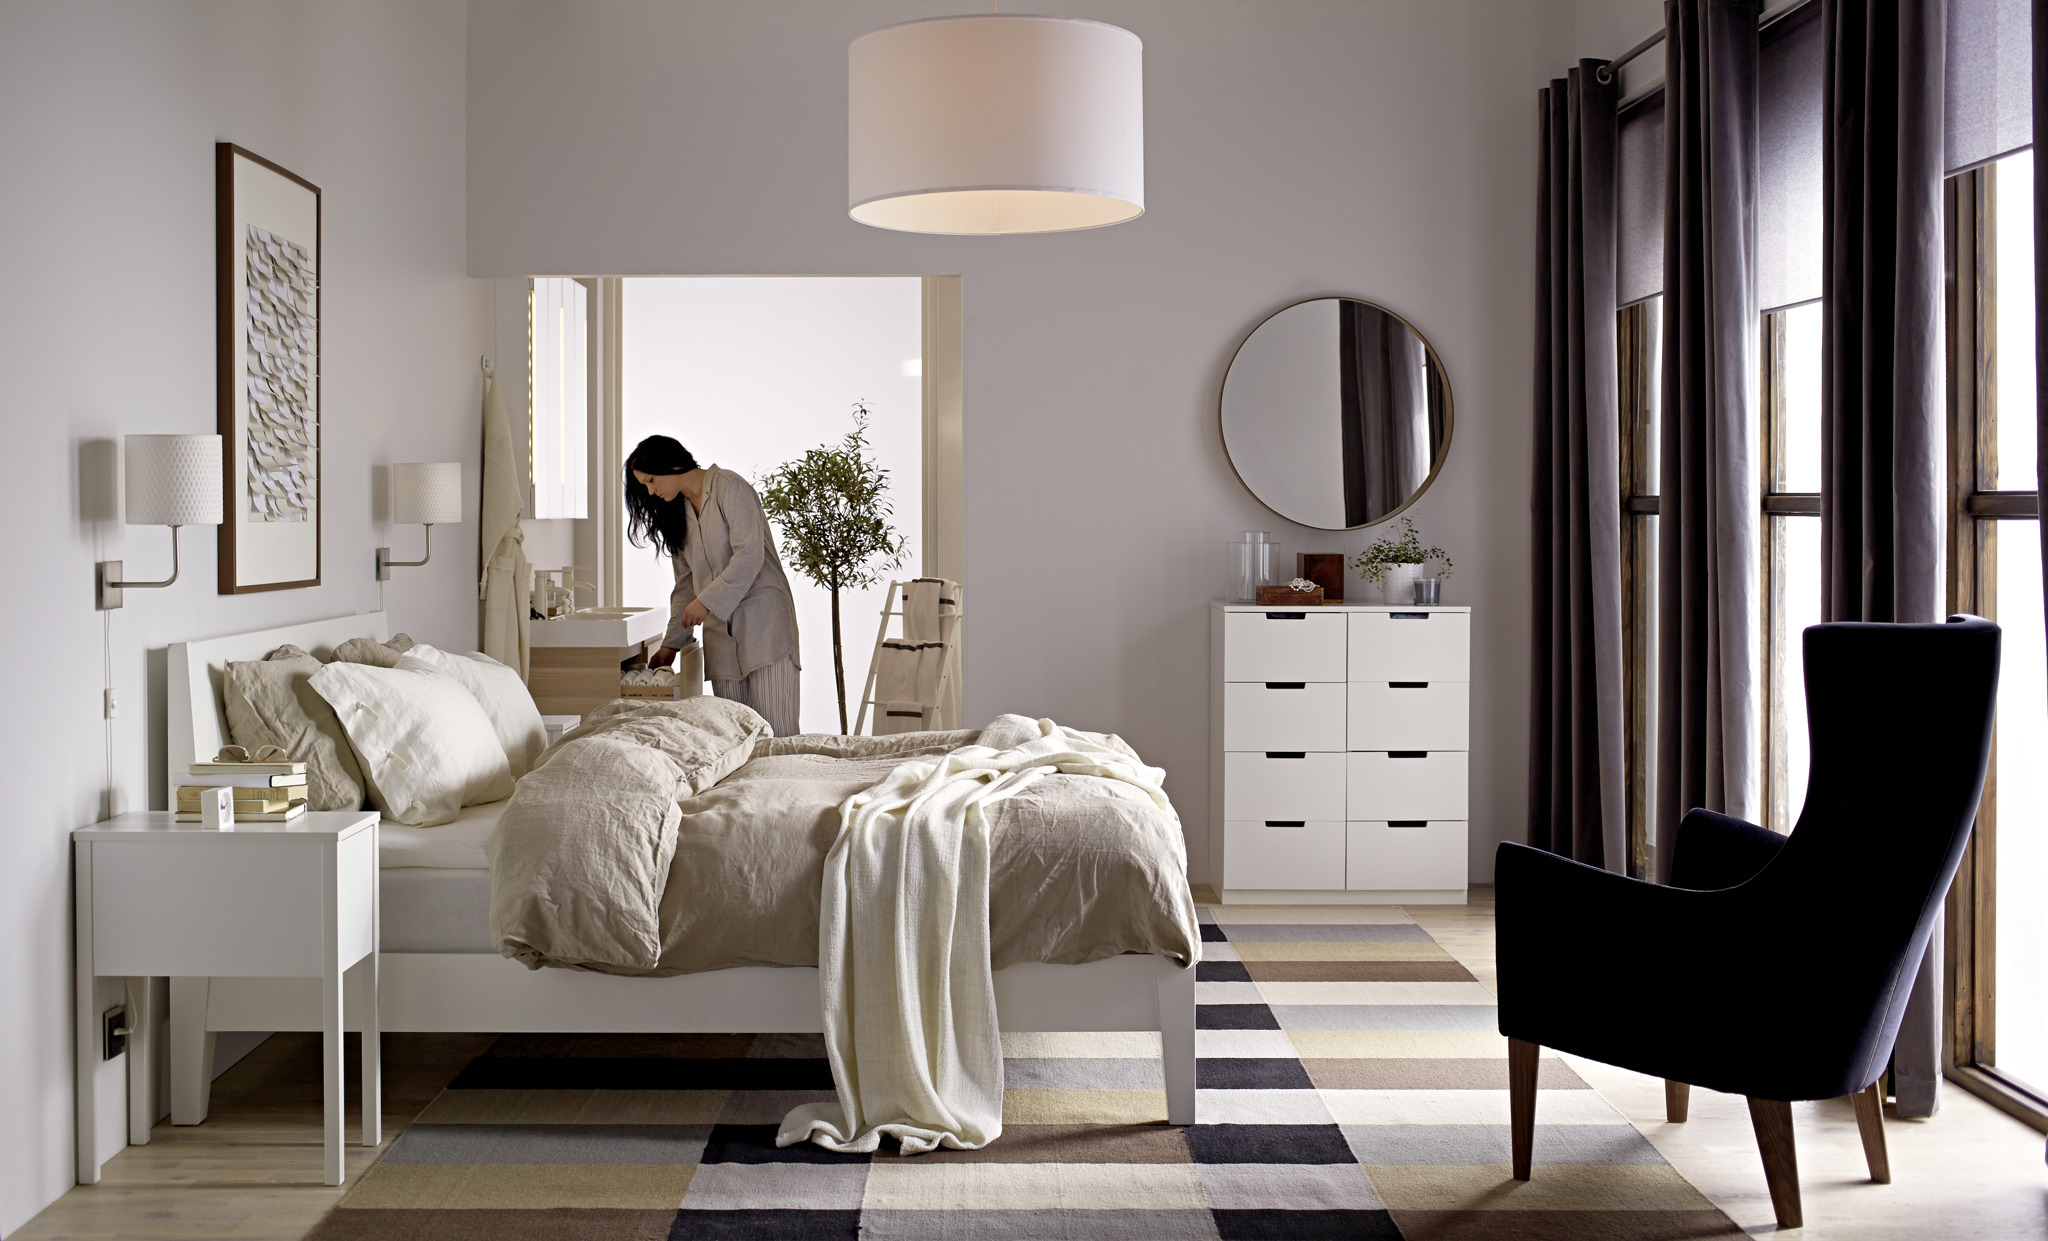 ikea belgique maintient le cap et continue de cro tre. Black Bedroom Furniture Sets. Home Design Ideas